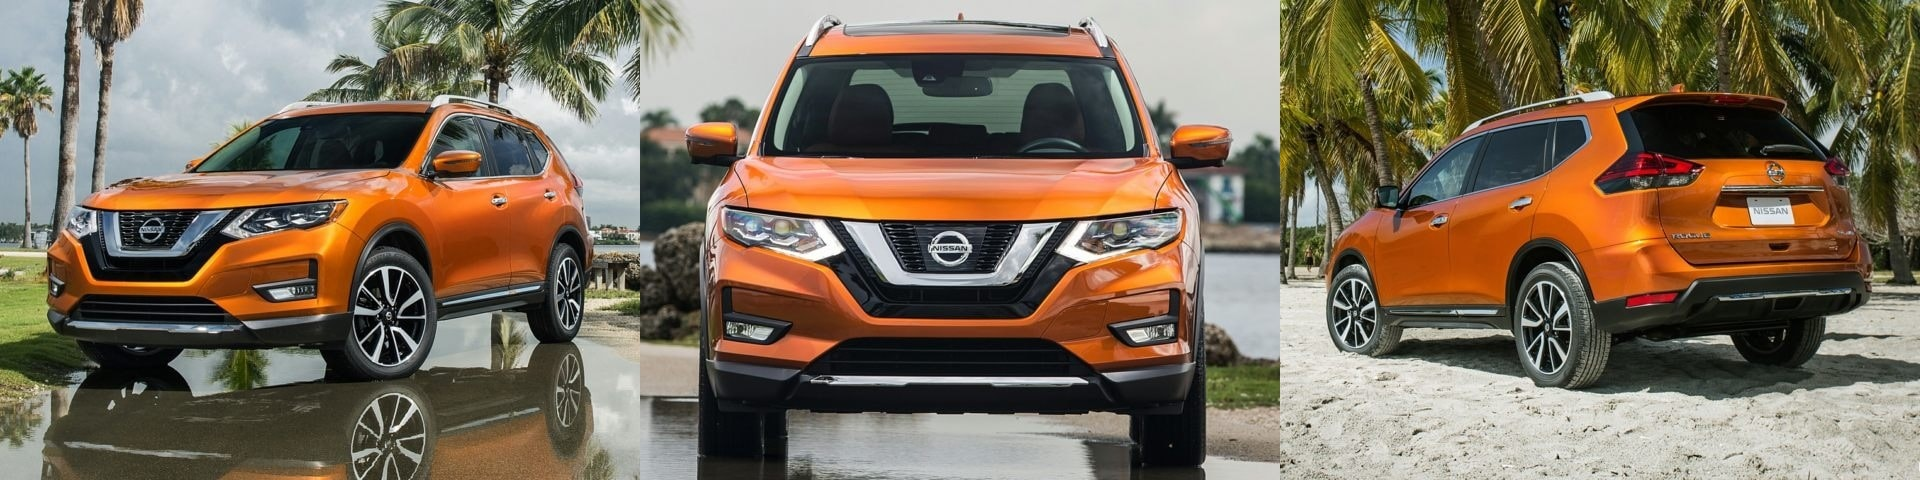 new 2017 2018 nissan rogue suvs for sale in brainerd mn tanner nissan sells services the. Black Bedroom Furniture Sets. Home Design Ideas